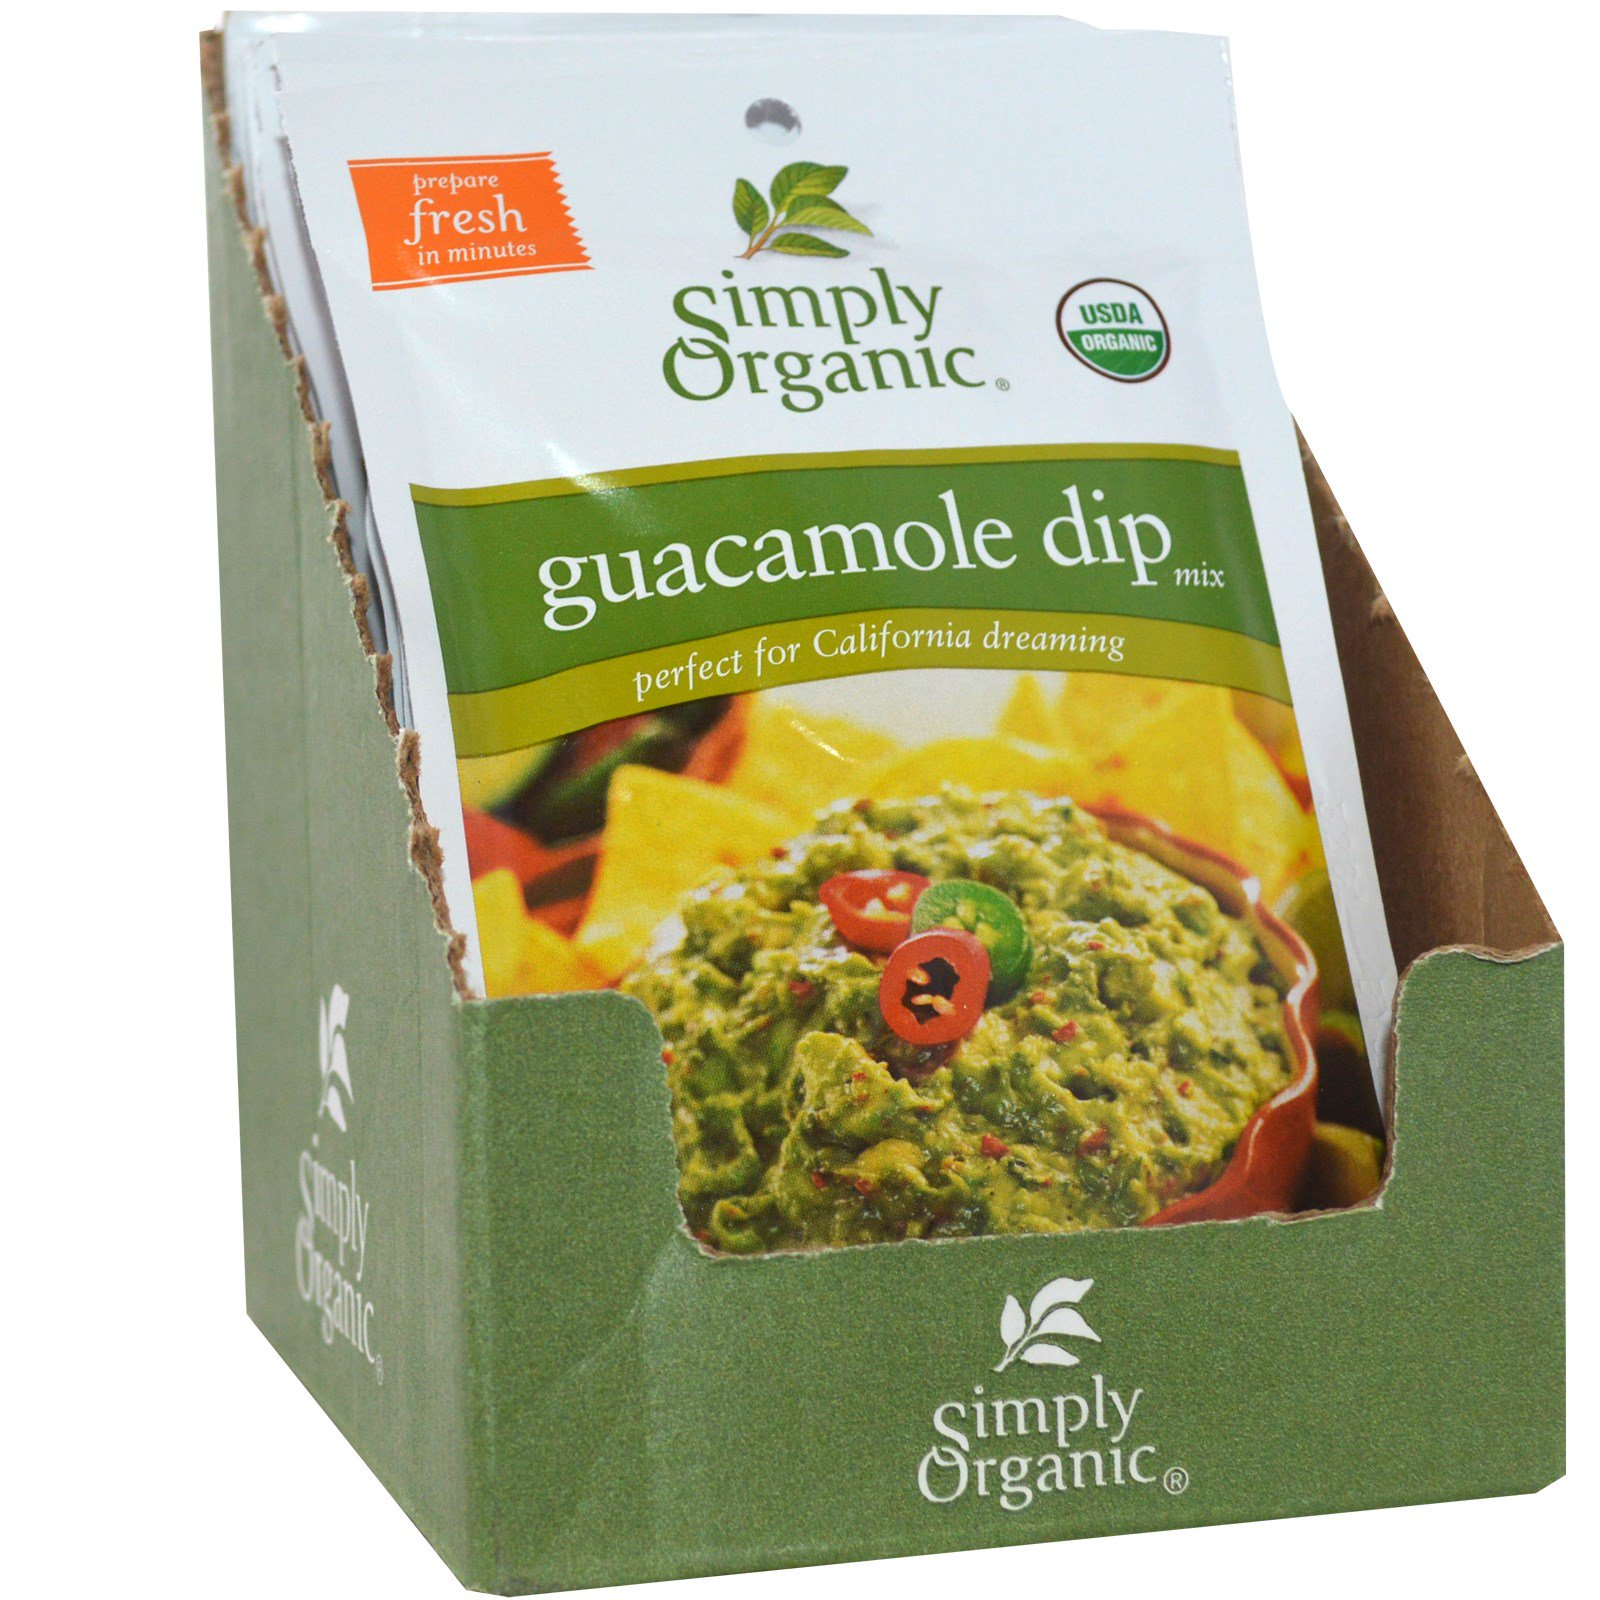 Simply Organic, Guacamole Dip Mix, 12 Packets, 0.8 oz (22.7 g) Each(pack of 1) by